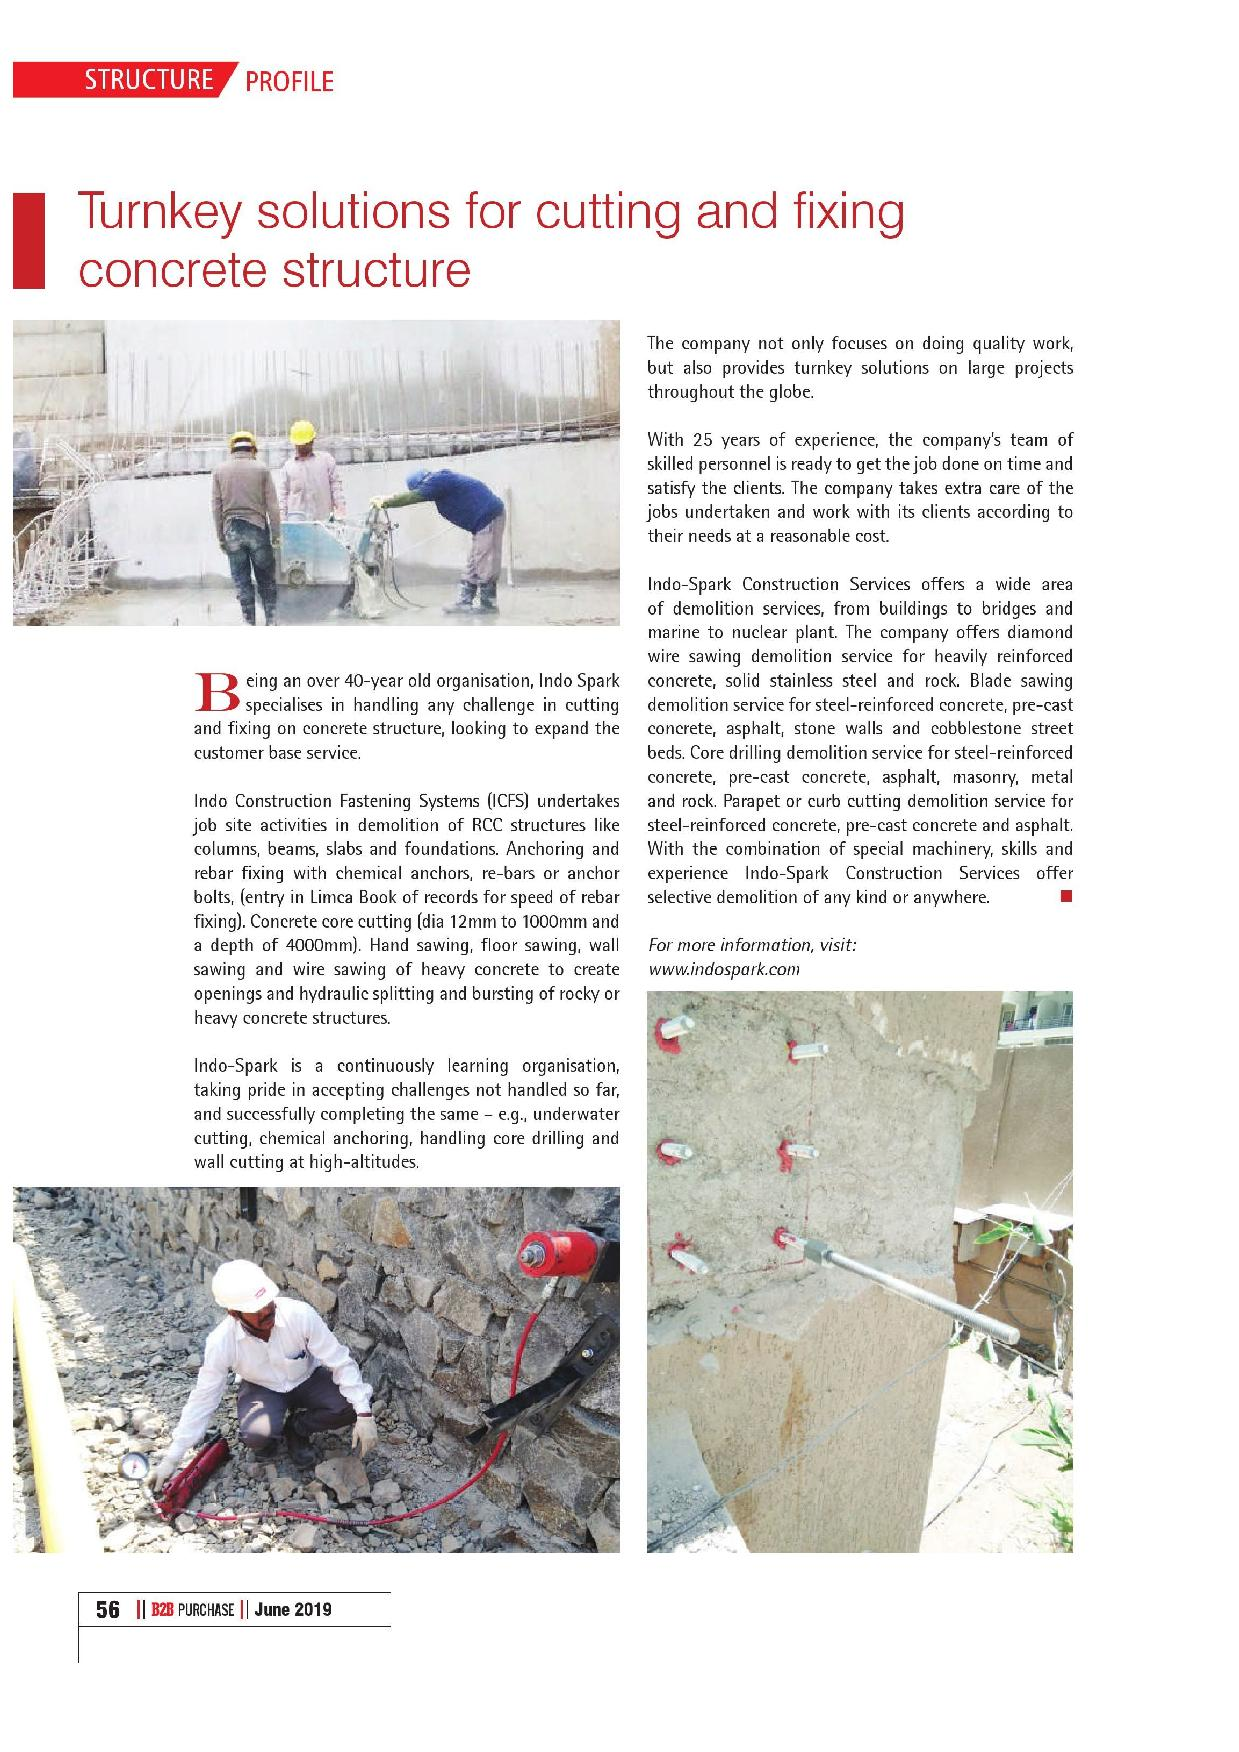 Turnkey solutions for cutting & fixing concrete structure